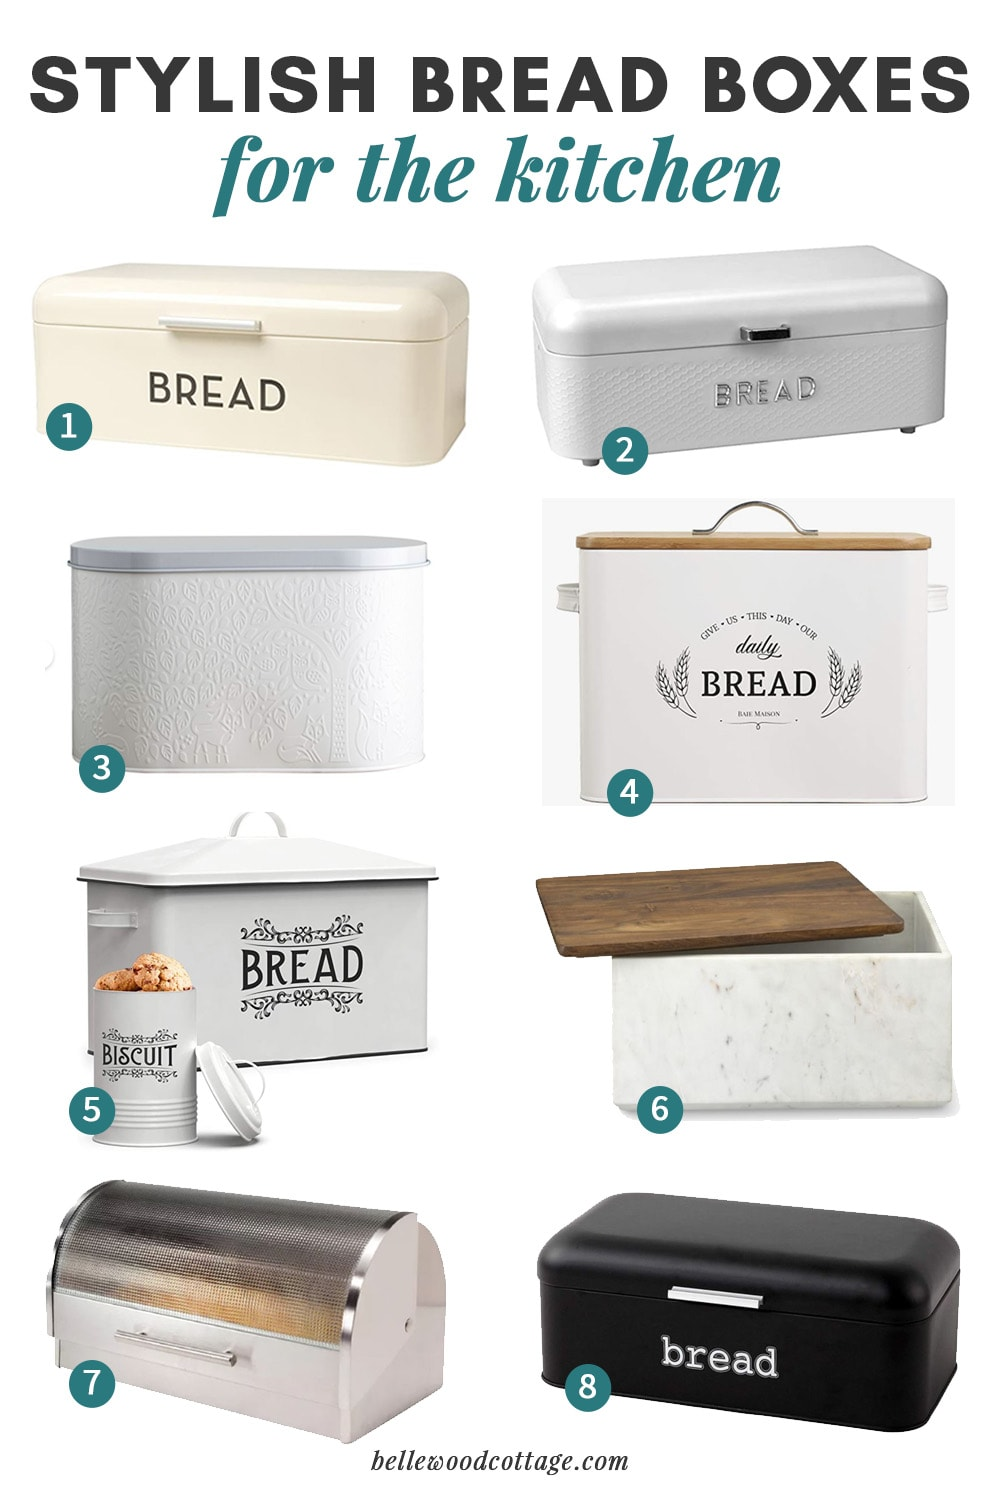 A collage of farmhouse bread boxes with numbers for easy reference.